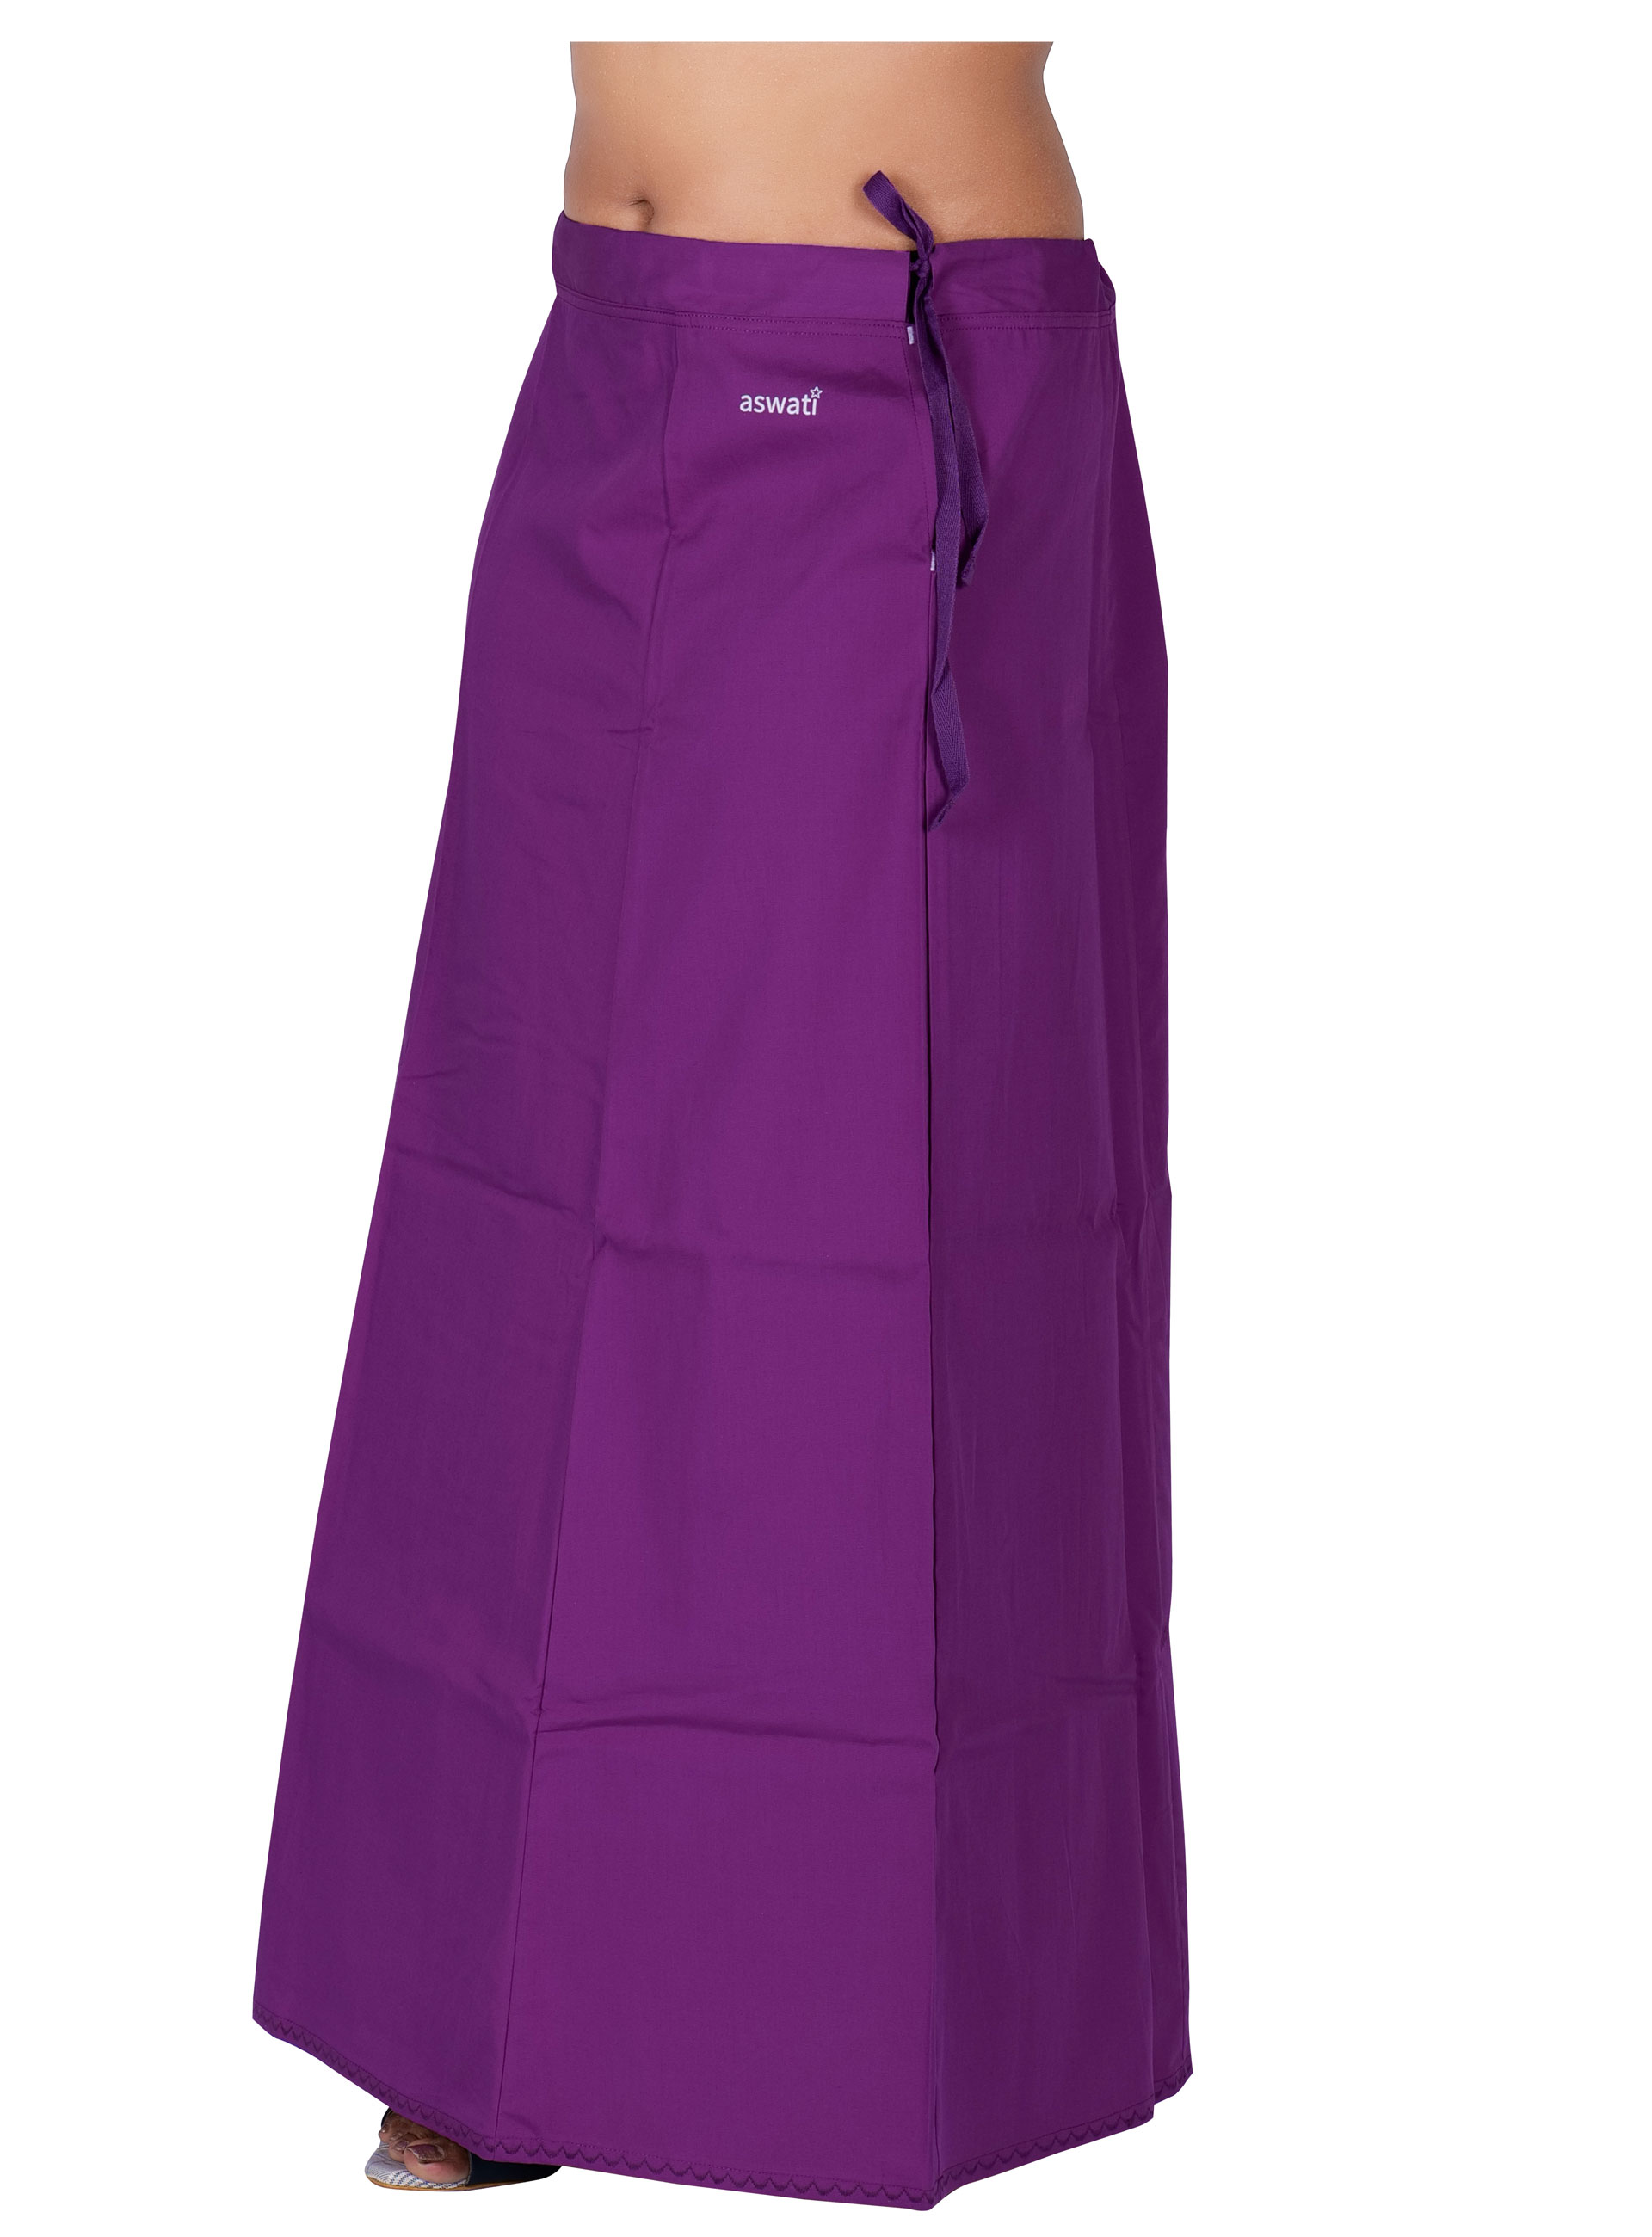 Purple Color Aswati Premium Inskirts (6 PART)